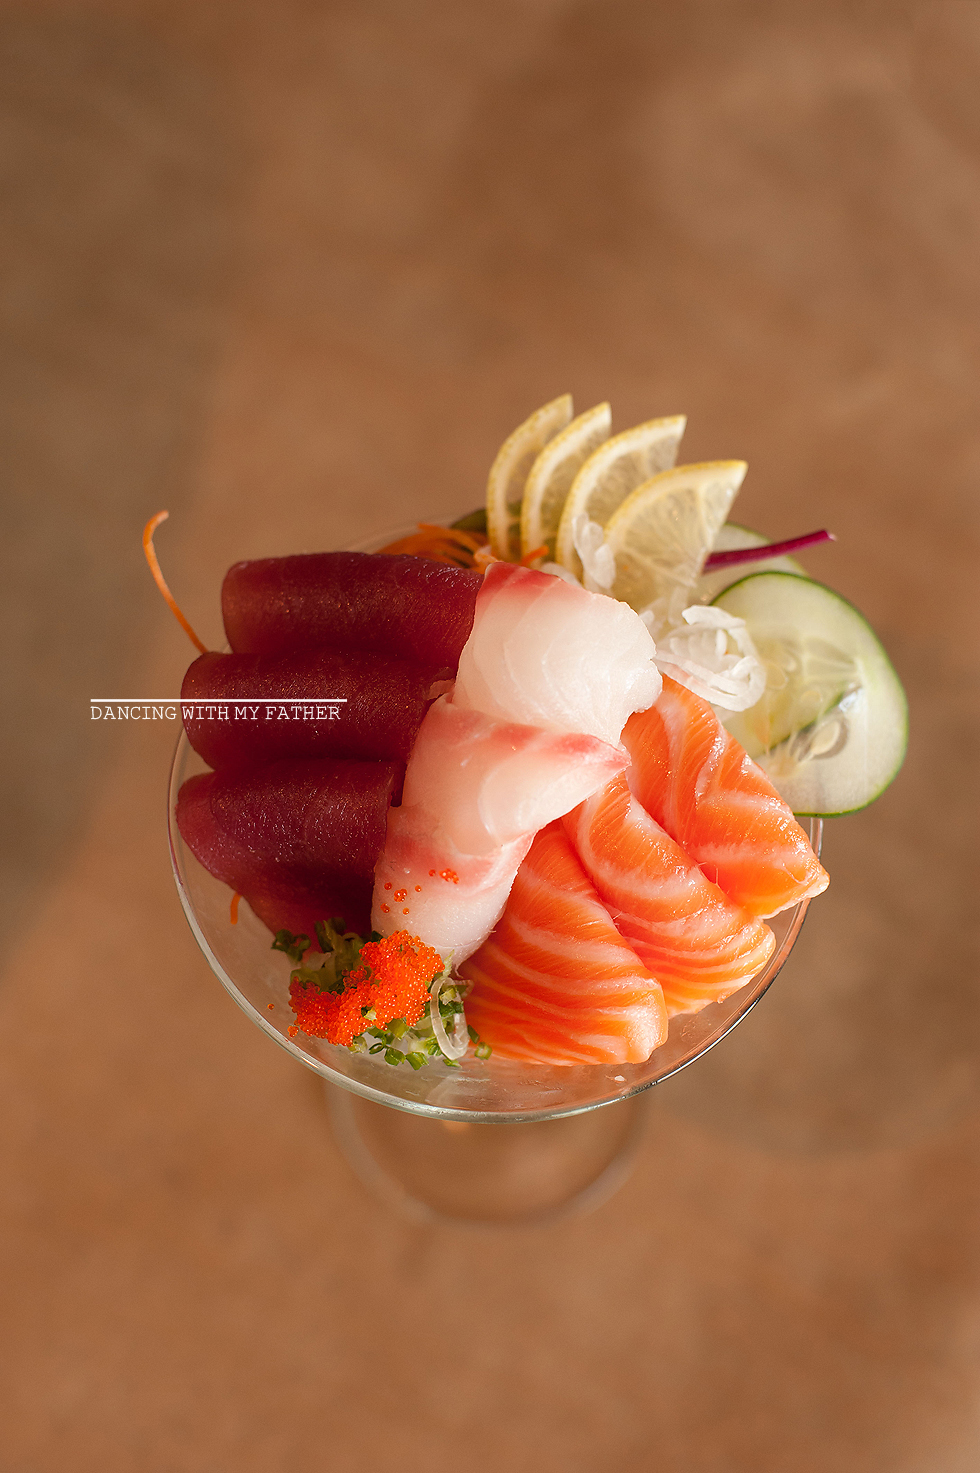 tampa st pete clearwater food photographer legacy seven studios (4)